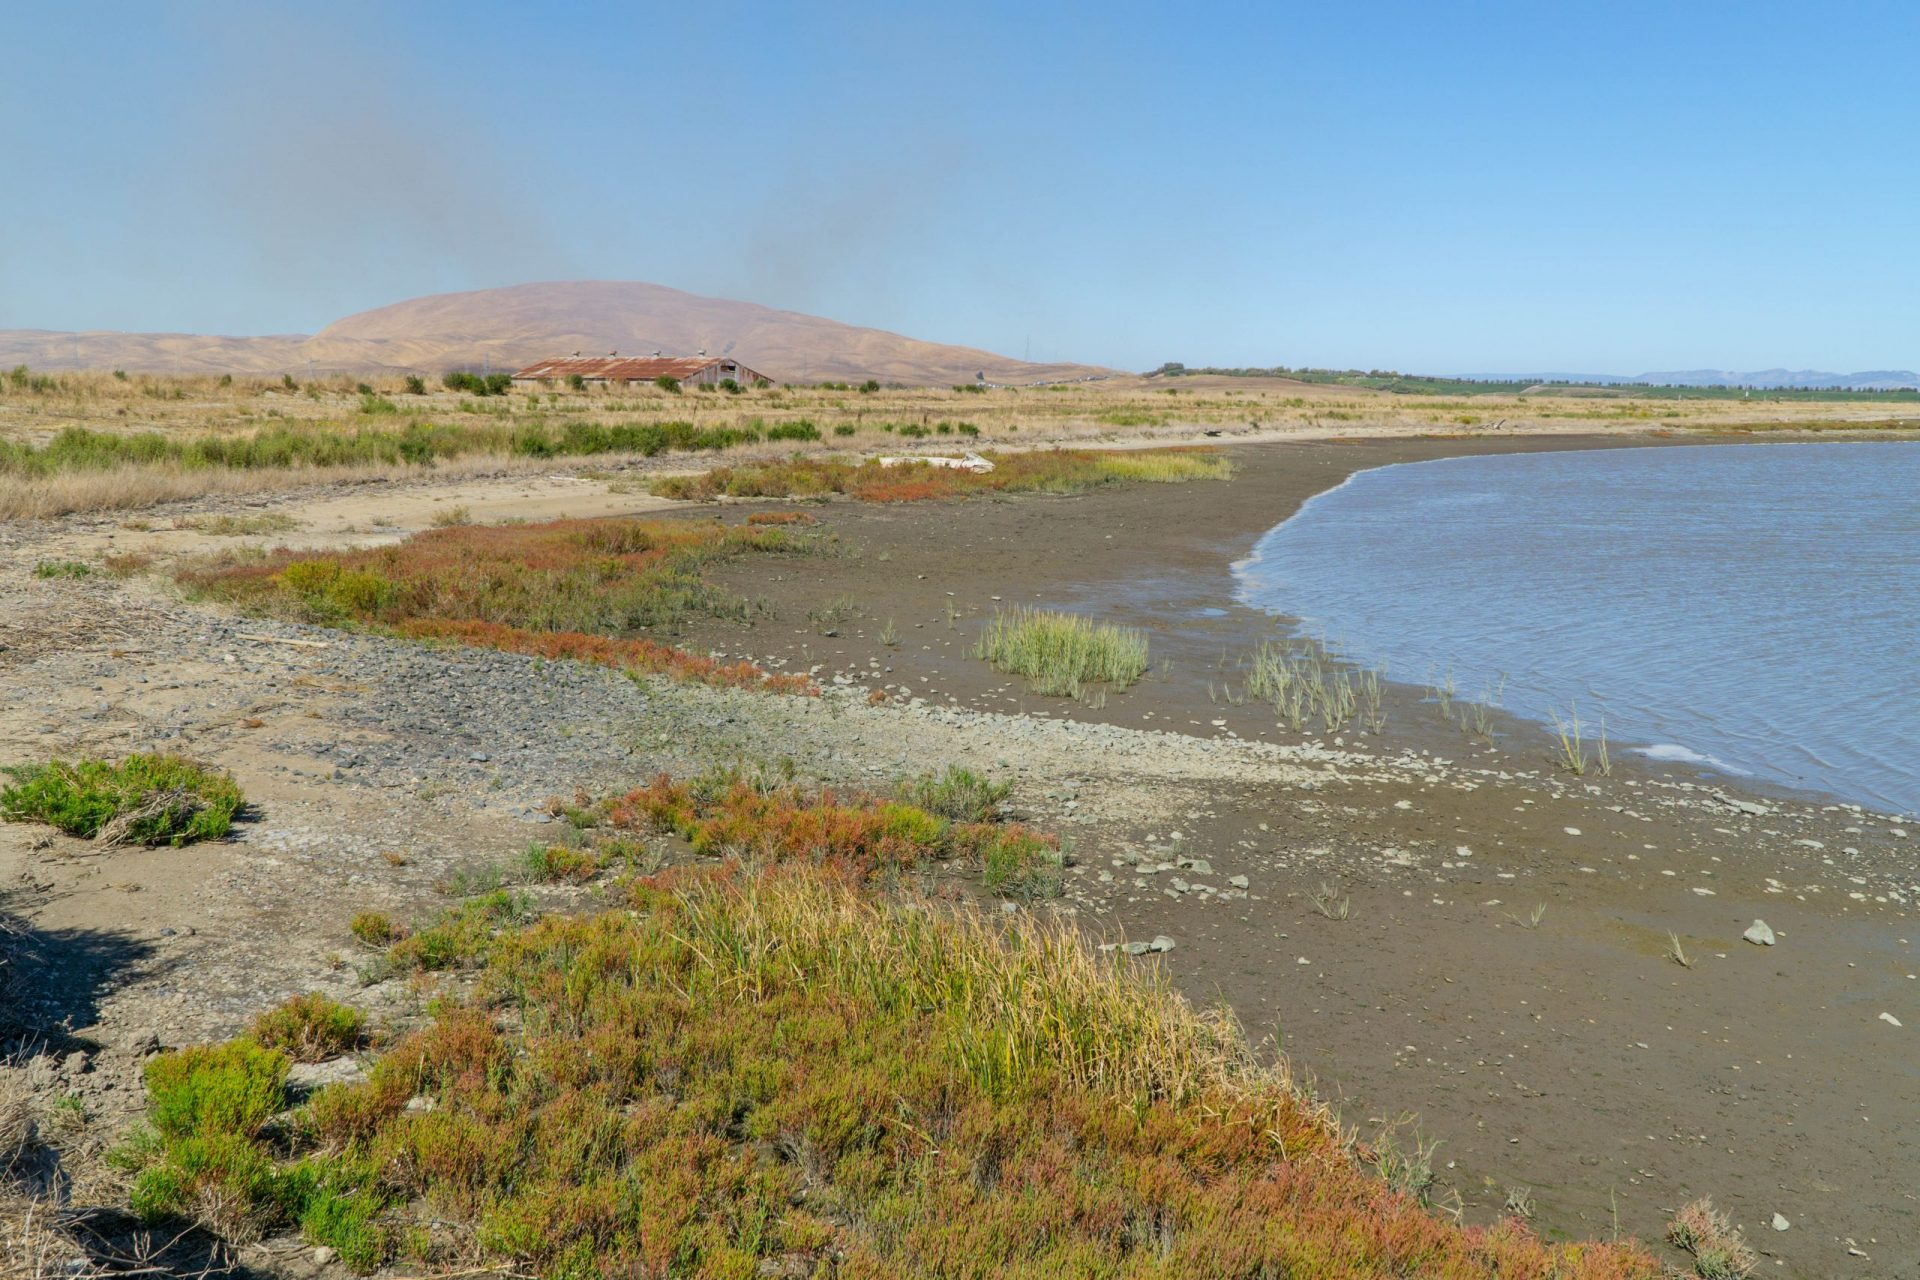 red, brown, green marsh plants and beach with golden hill in background